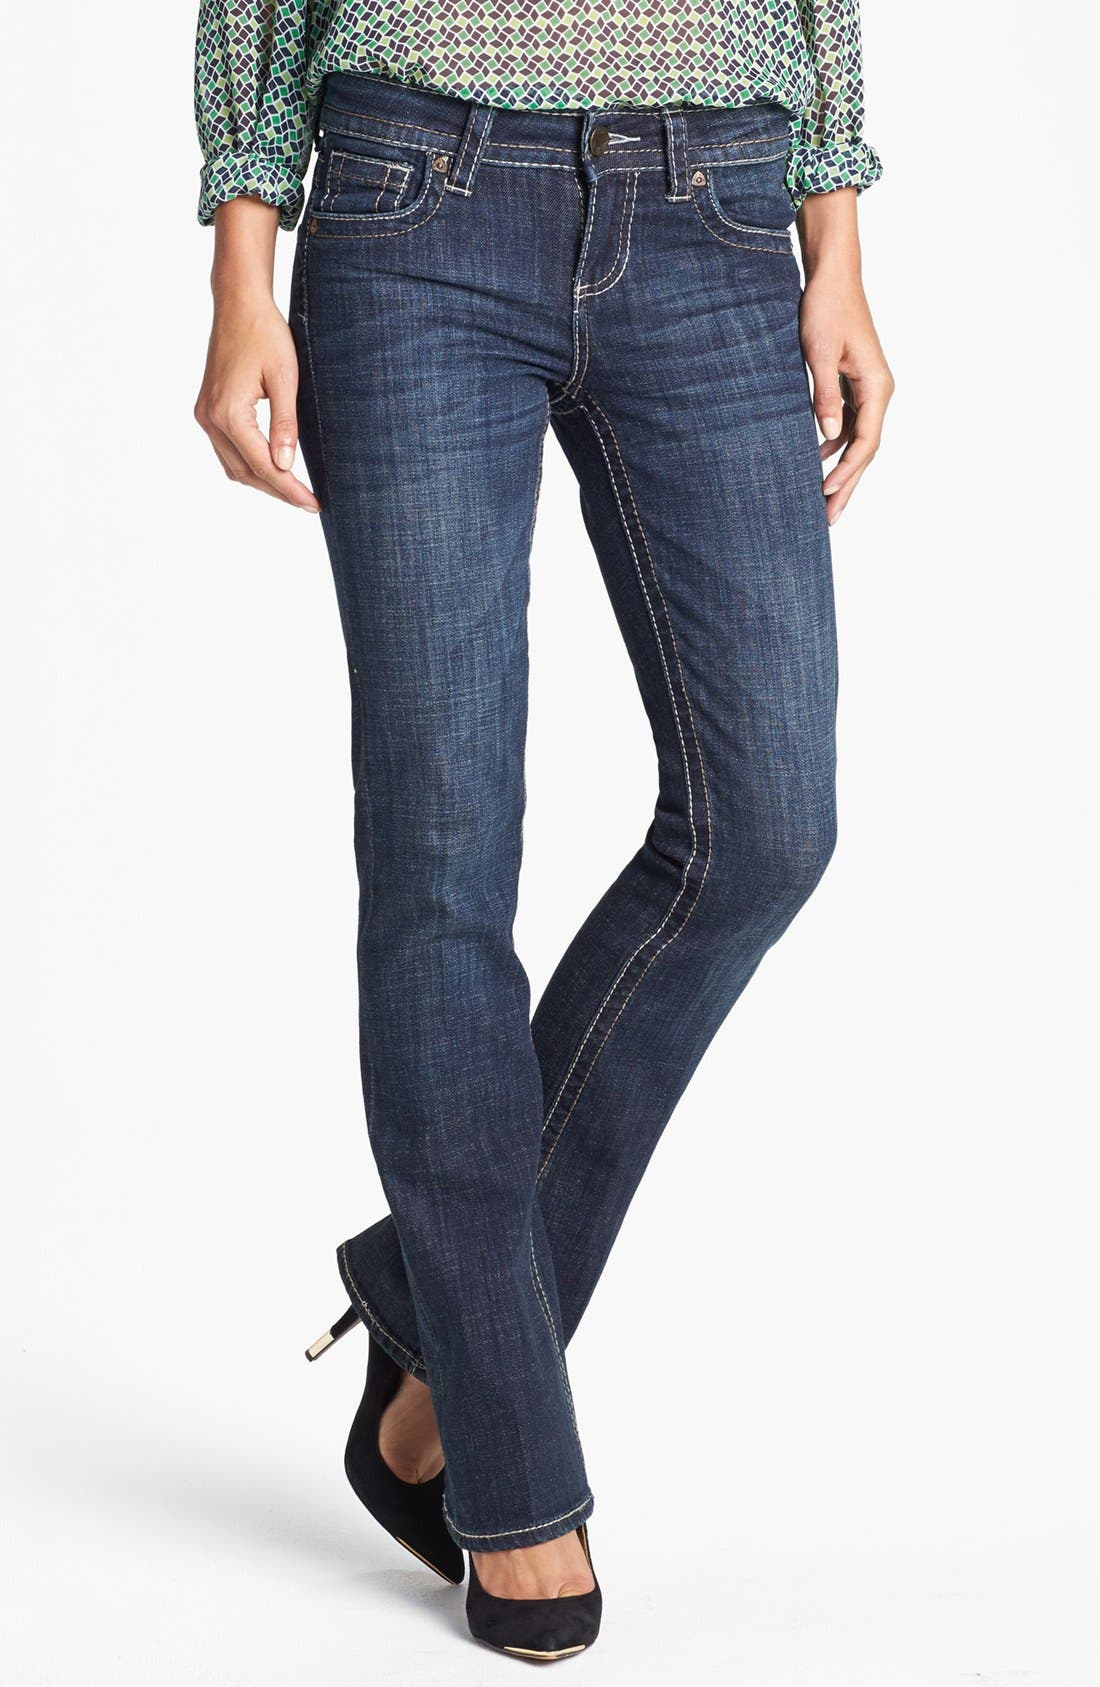 Main Image - KUT from the Kloth 'Natalie' Bootcut Jeans (Regular & Tall) (Care)